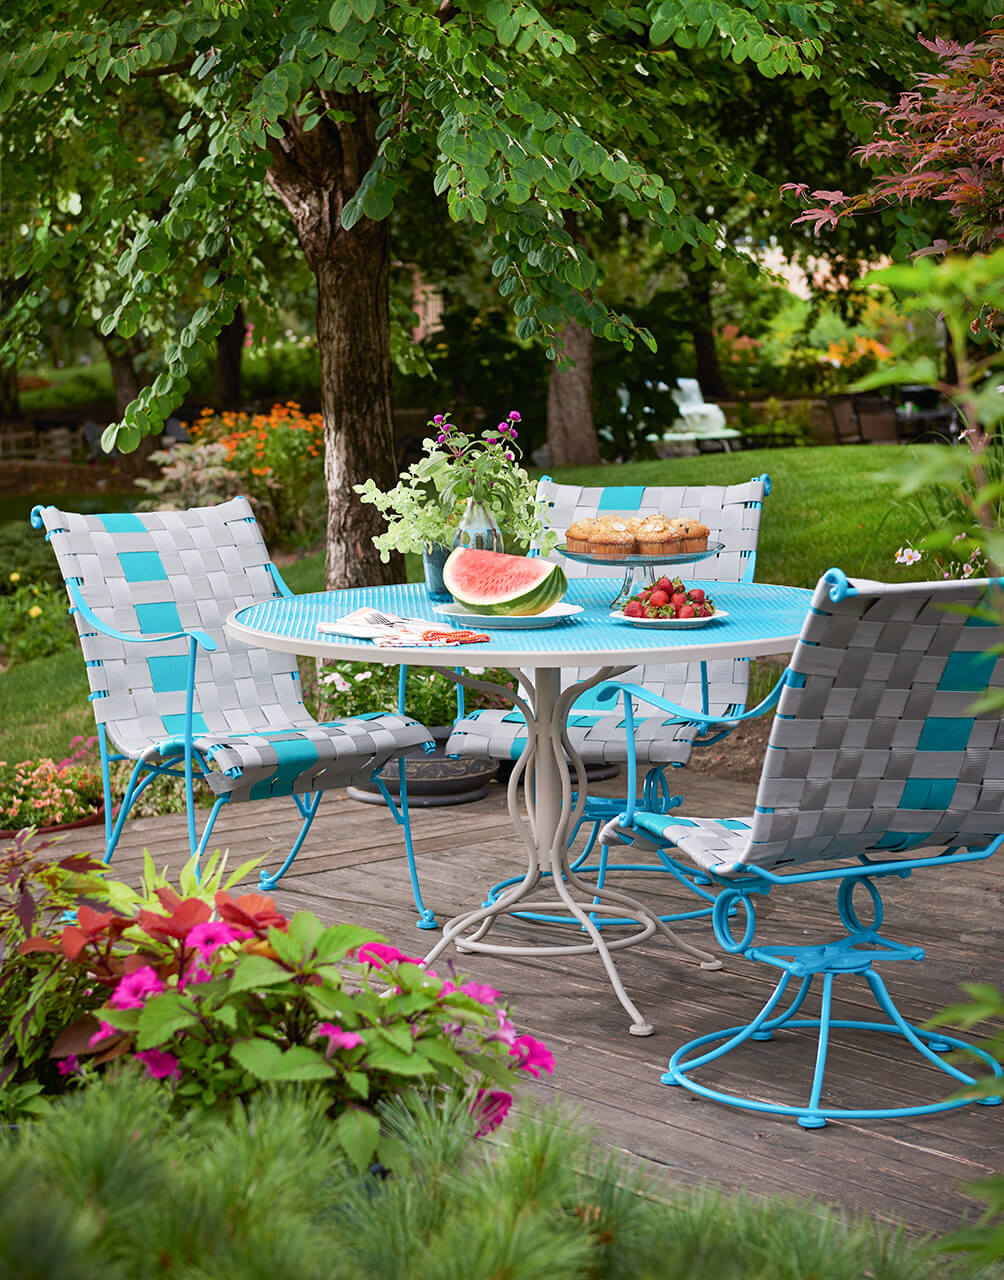 REFINISH THE FURNITURE FOR MAKEOVER PATIO ON A BUDGET